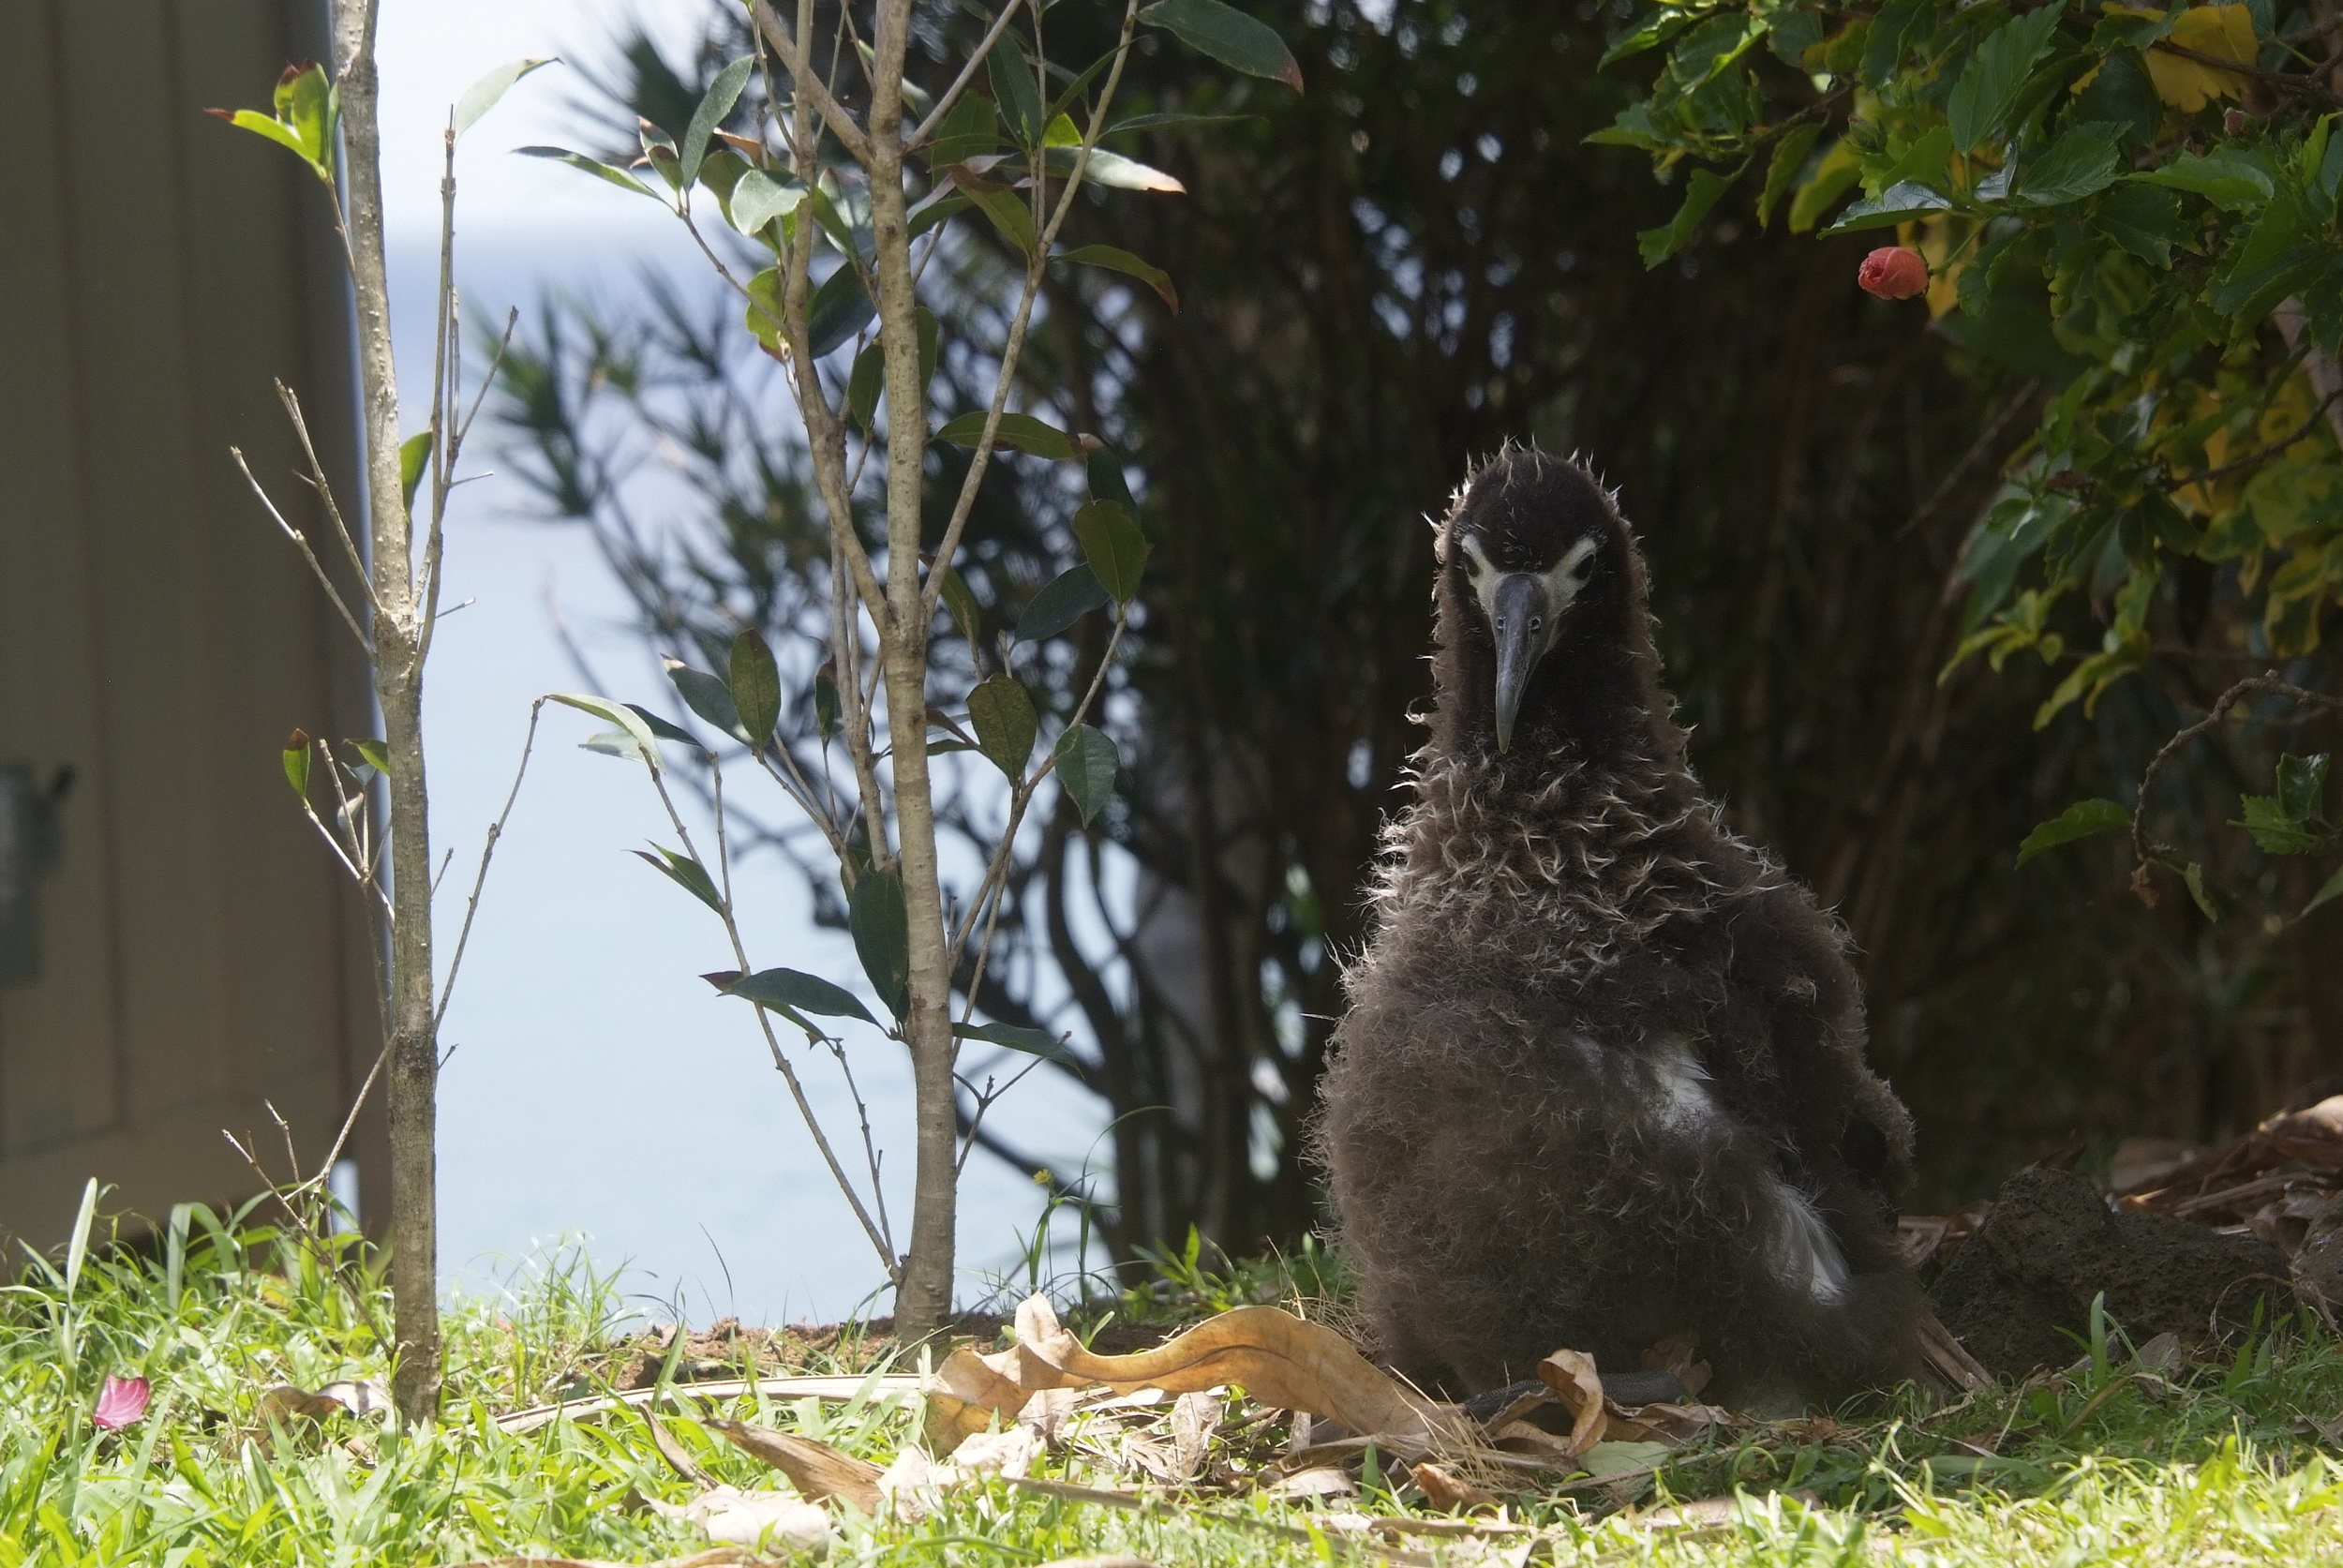 8. His position is unusual since he can see the ocean behind him from his nesting spot. Most chicks are more inland and will not see the ocean until the day they get the urge to fledge. That day, they walk around searching for access to the ocean between the houses.